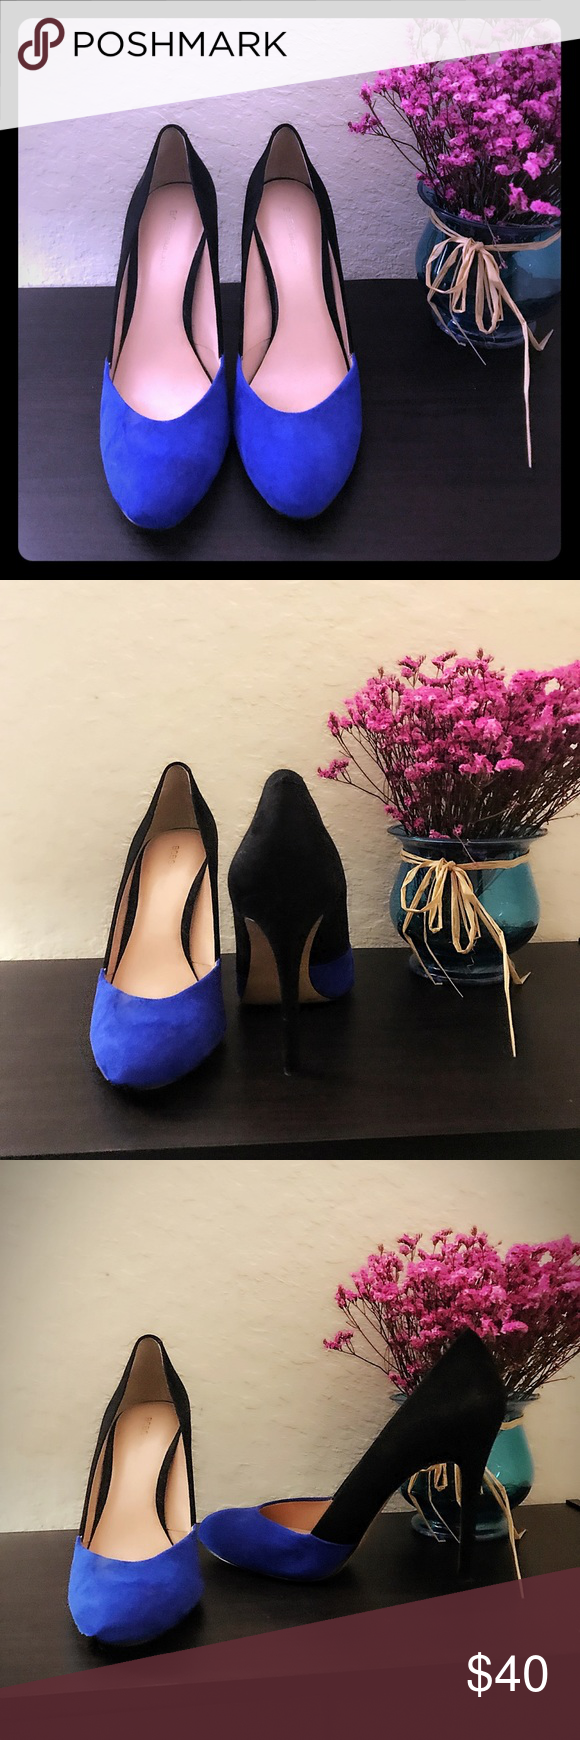 💖BCBG Gorgeous color block heels Fantastic Black and Blue BCBG heels, the round toe makes them super comfortable, yet they are a compliment magnet. Only worn twice.🔥🔥🔥 BCBG Shoes Heels